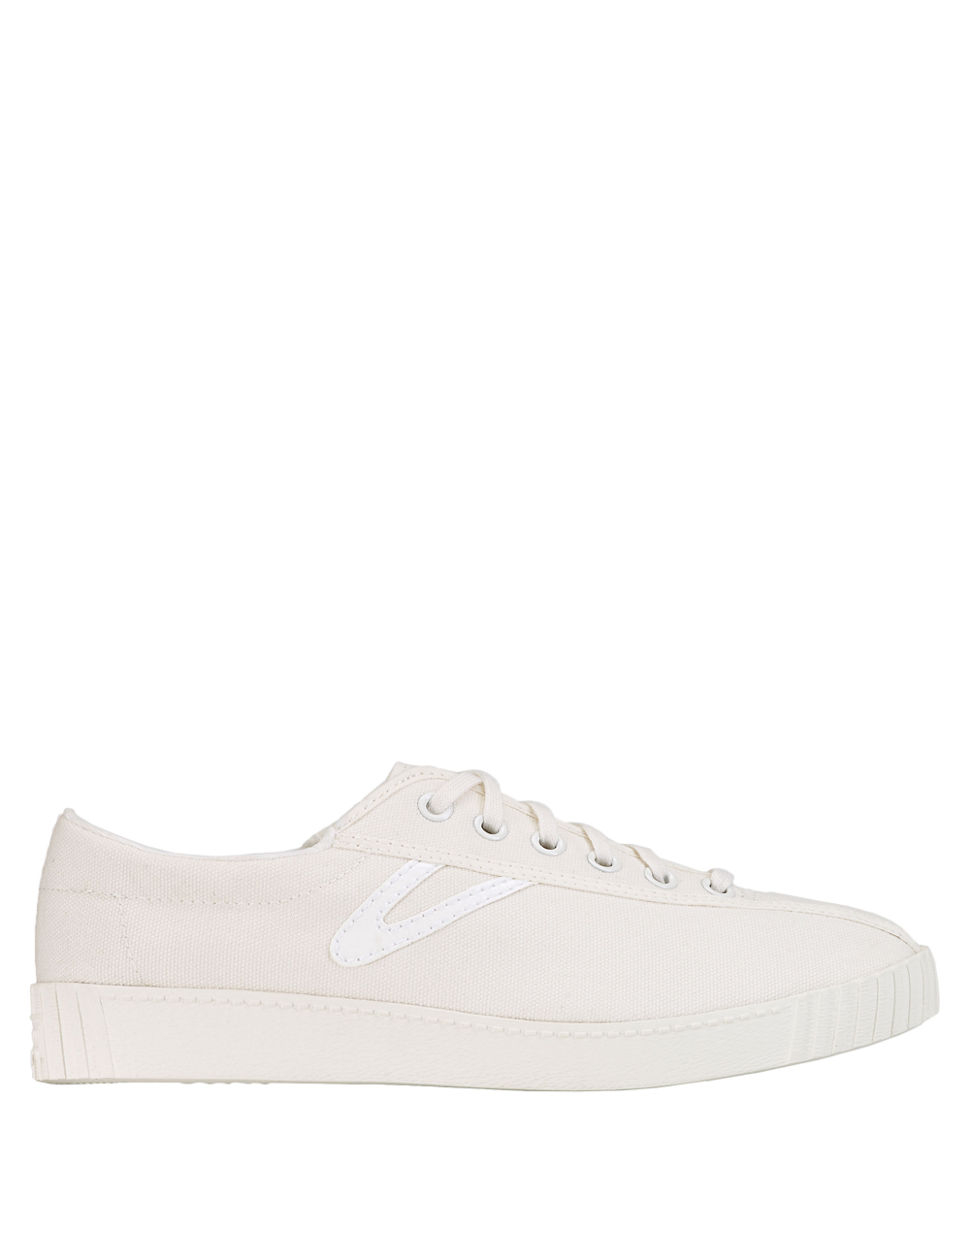 tretorn nylite canvas sneakers in white lyst